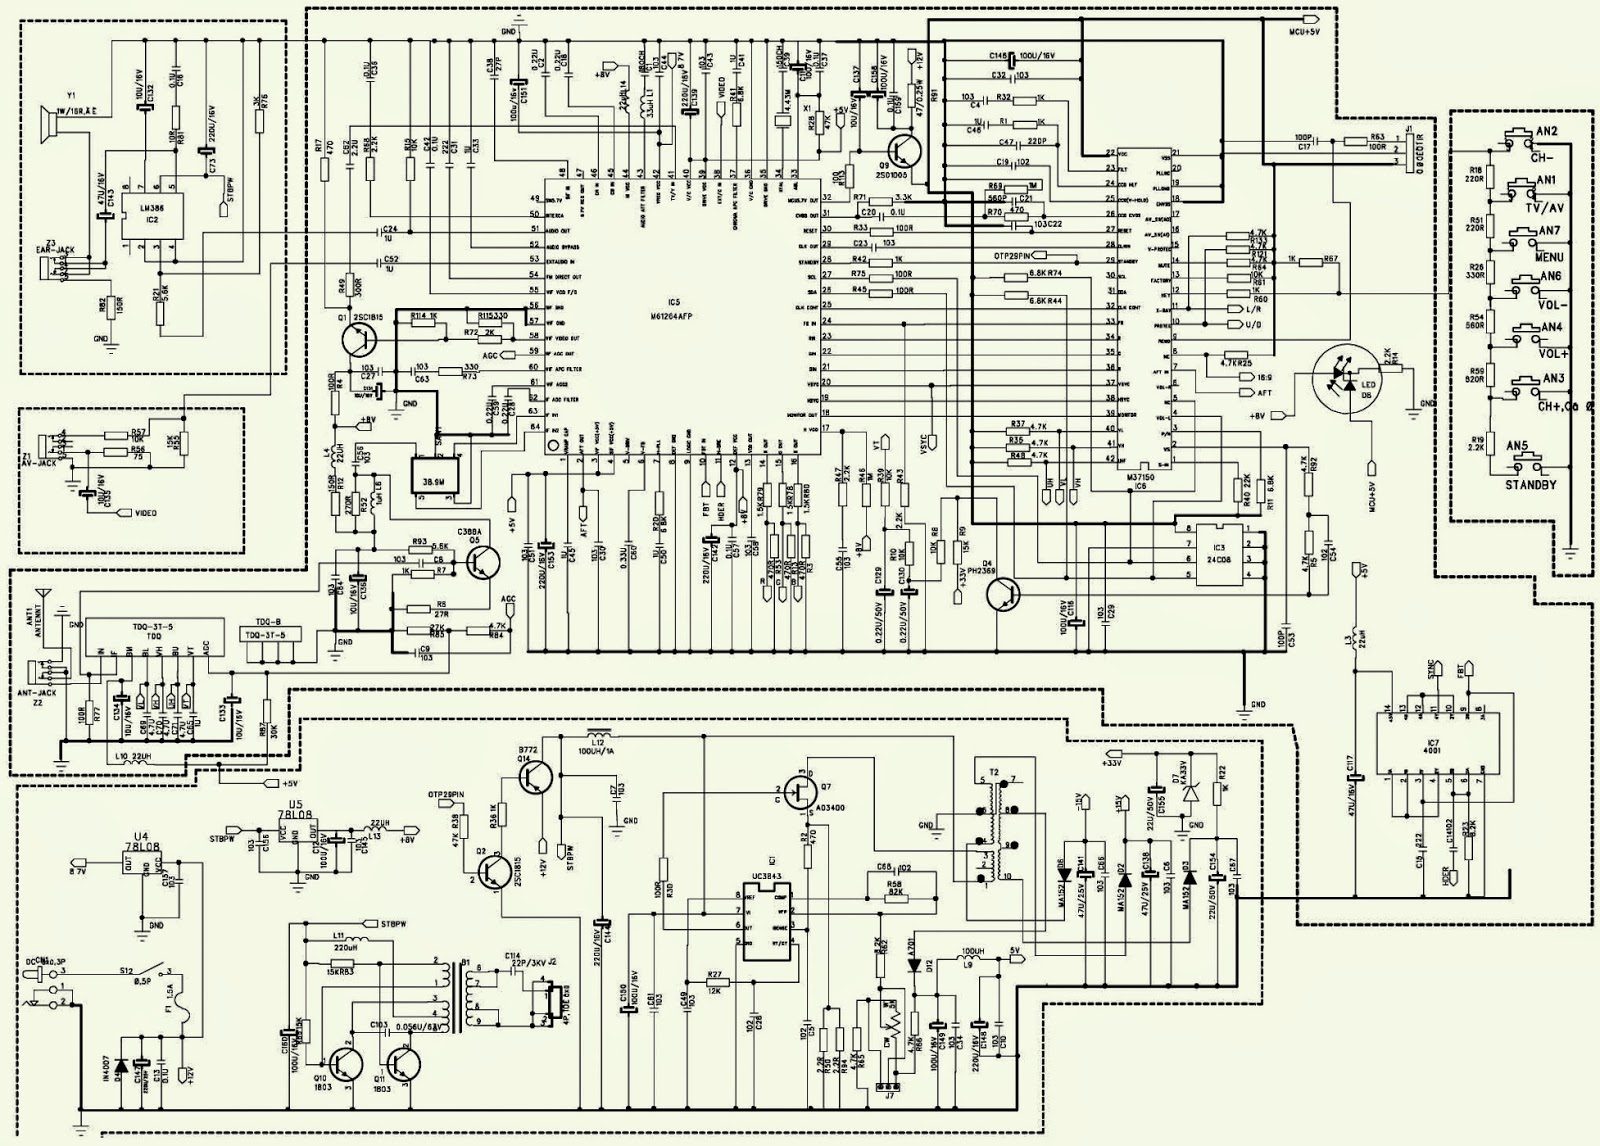 hight resolution of 7 inch tft circuit diagram wiring diagram viewhyundai tv 800 7 inch tft lcd tv schematic